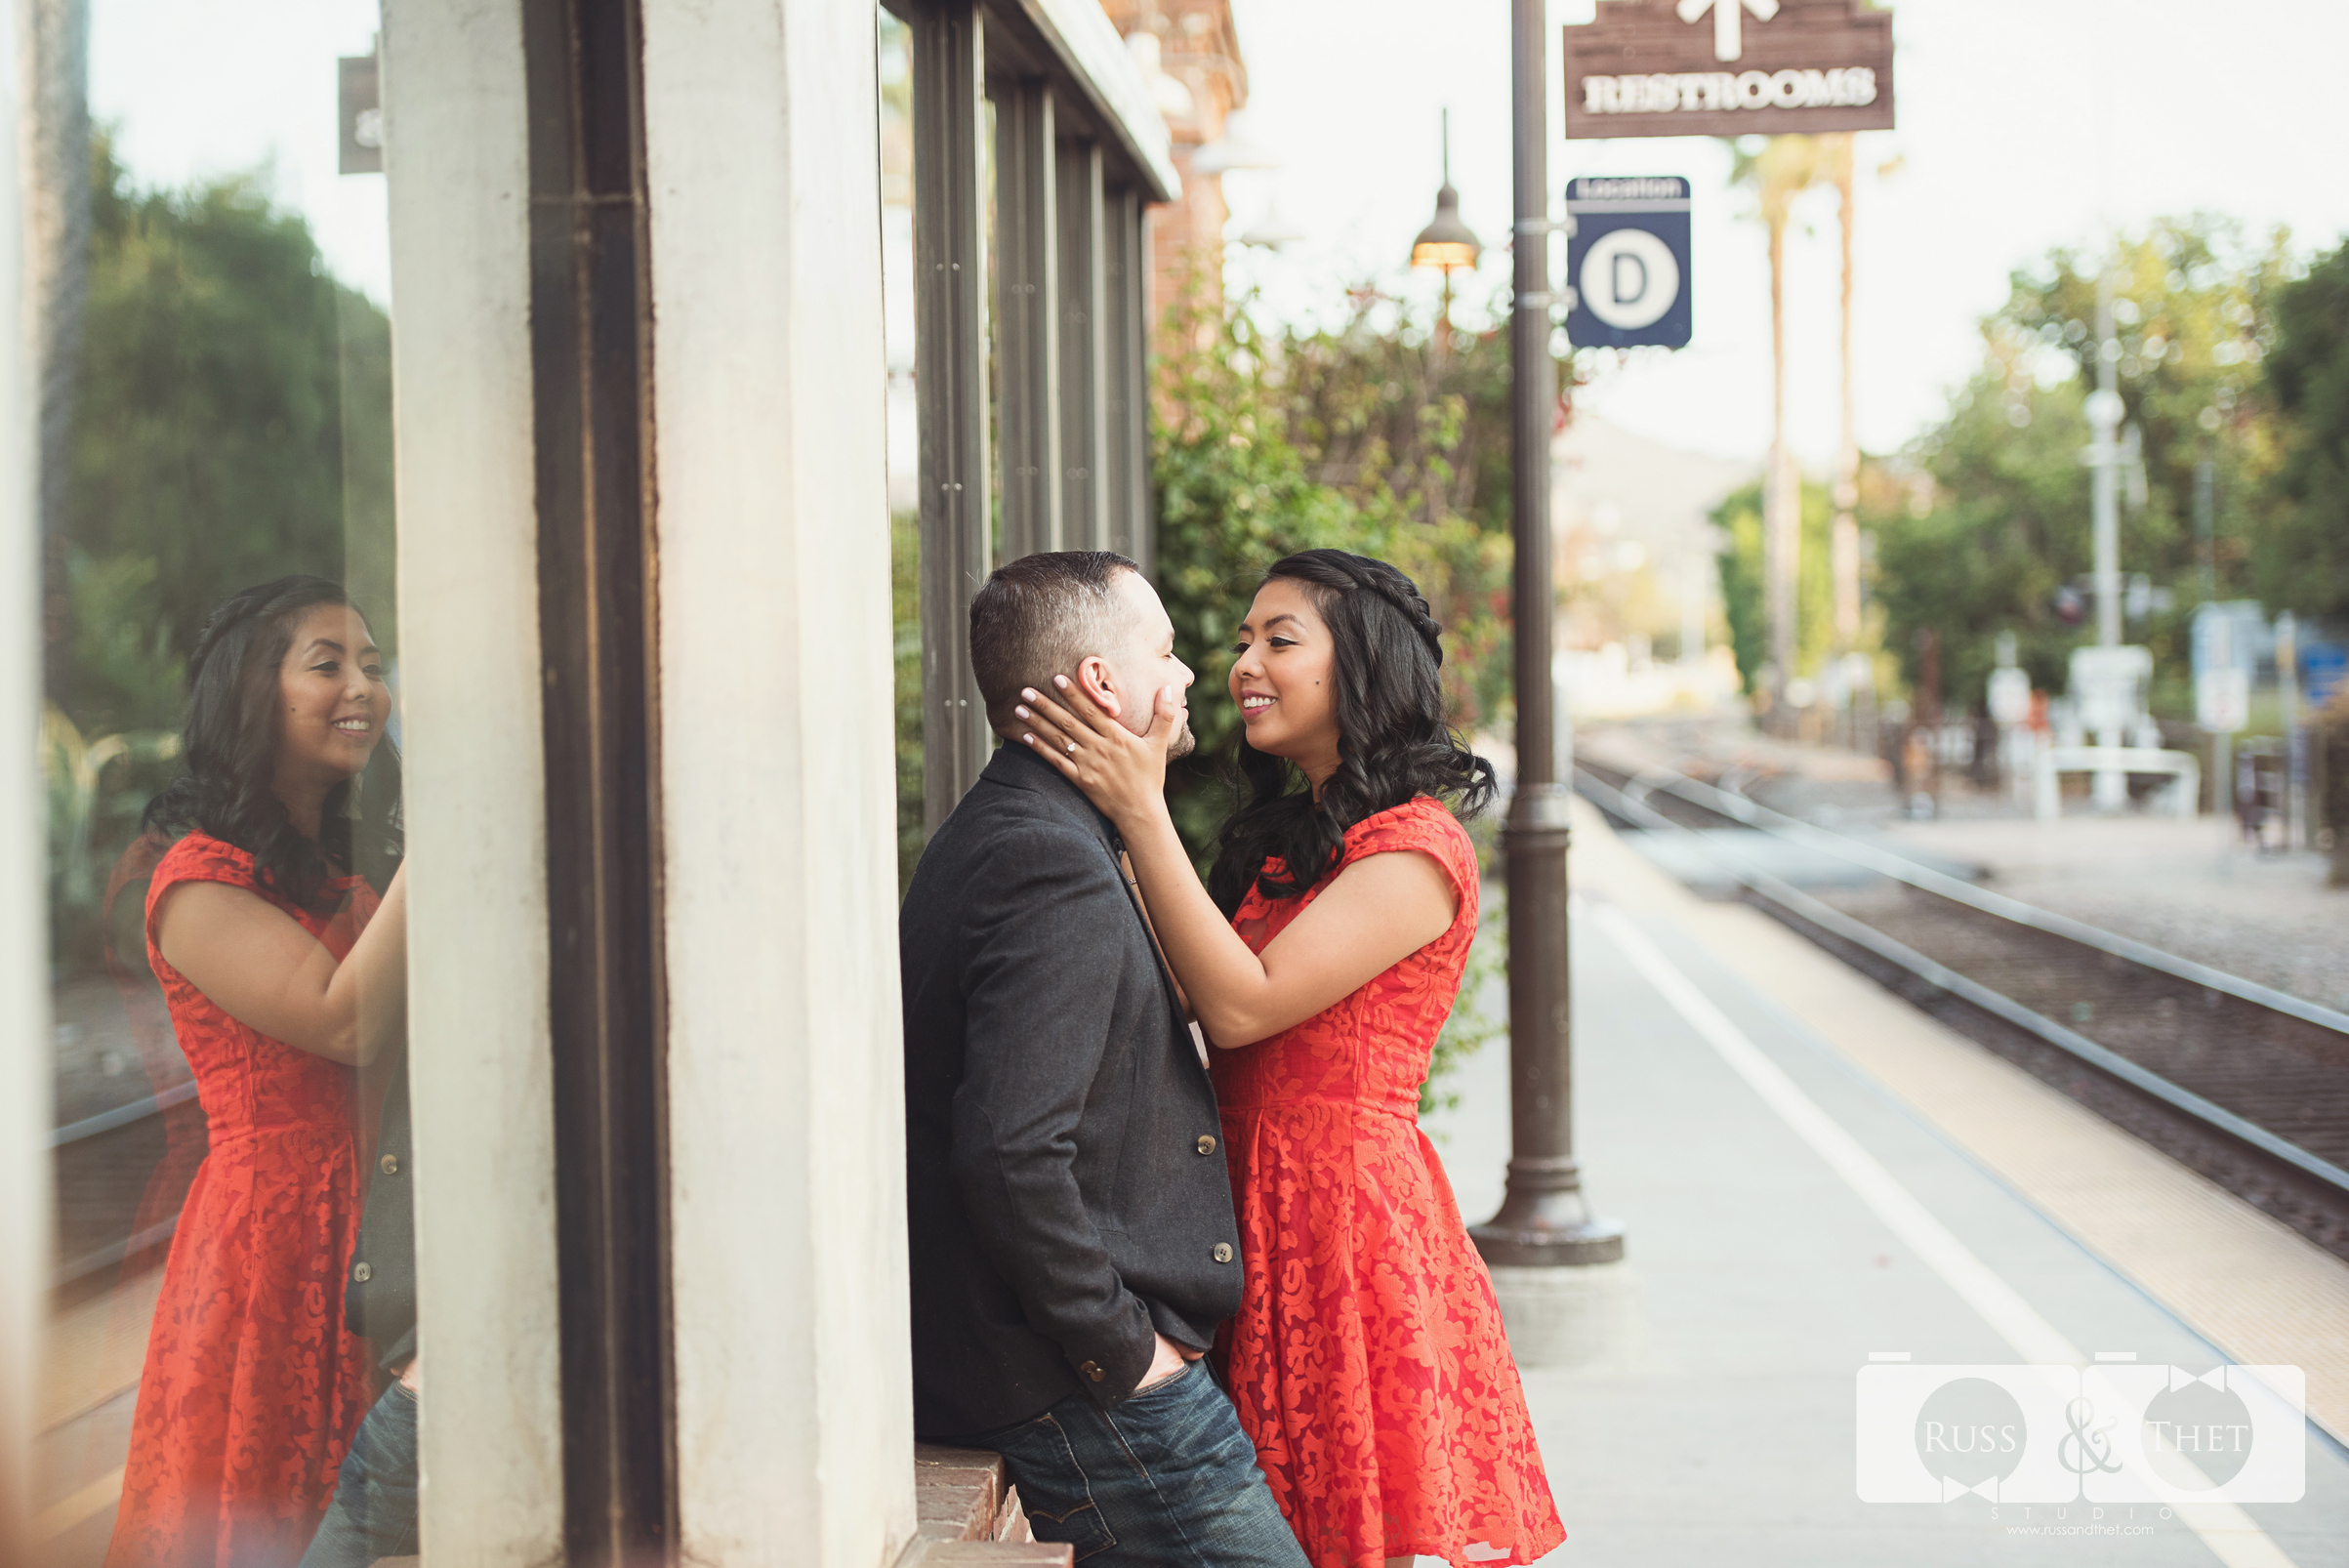 San-Juan-Capistrano-Engagement-Photographer (6).jpg